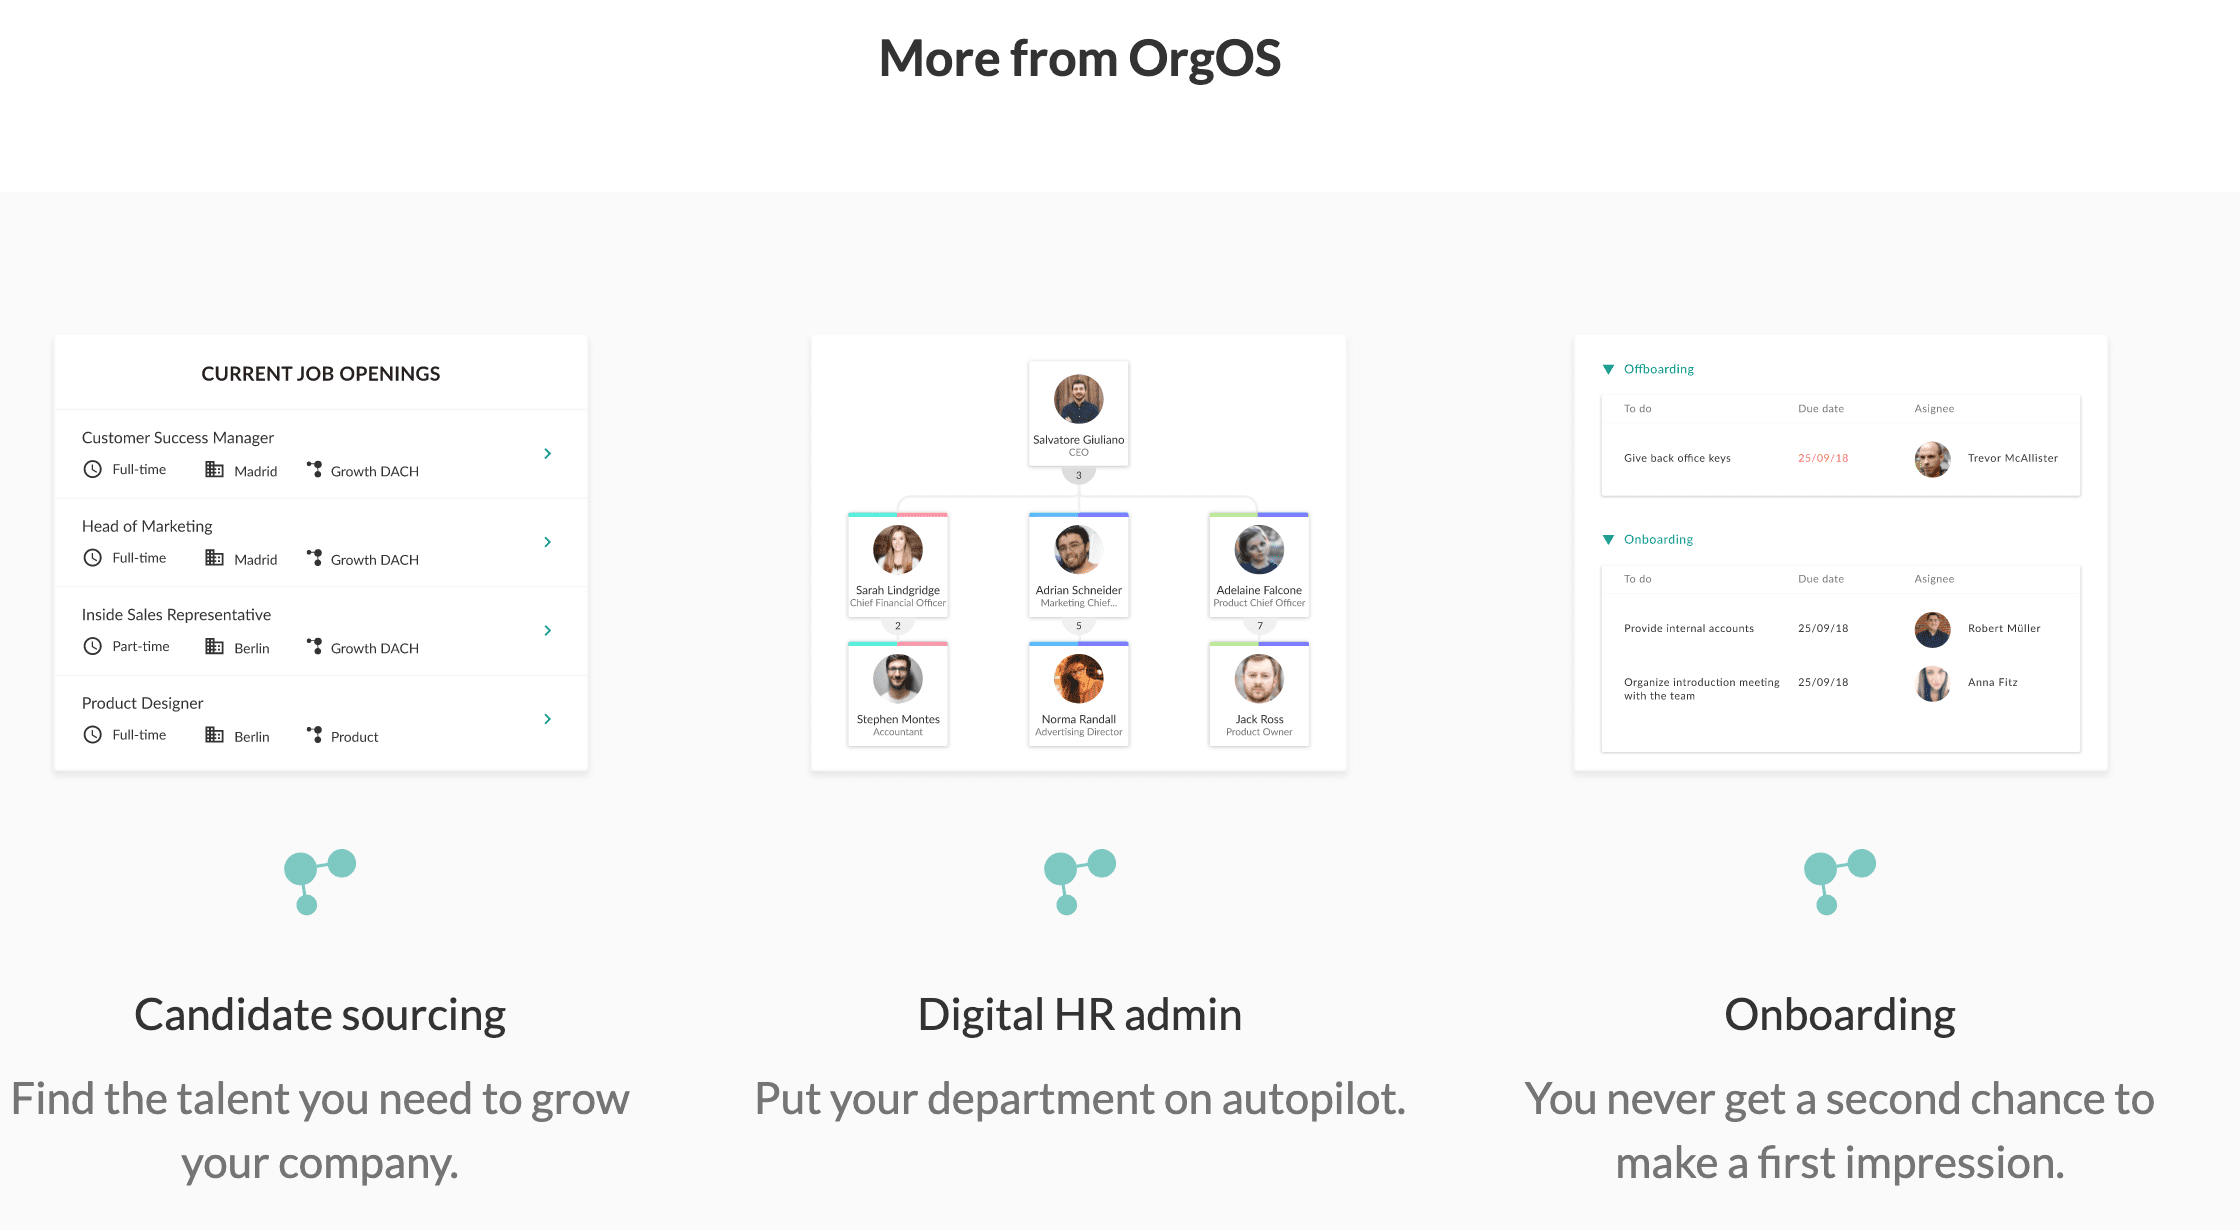 OrgOS HR Technology Tool